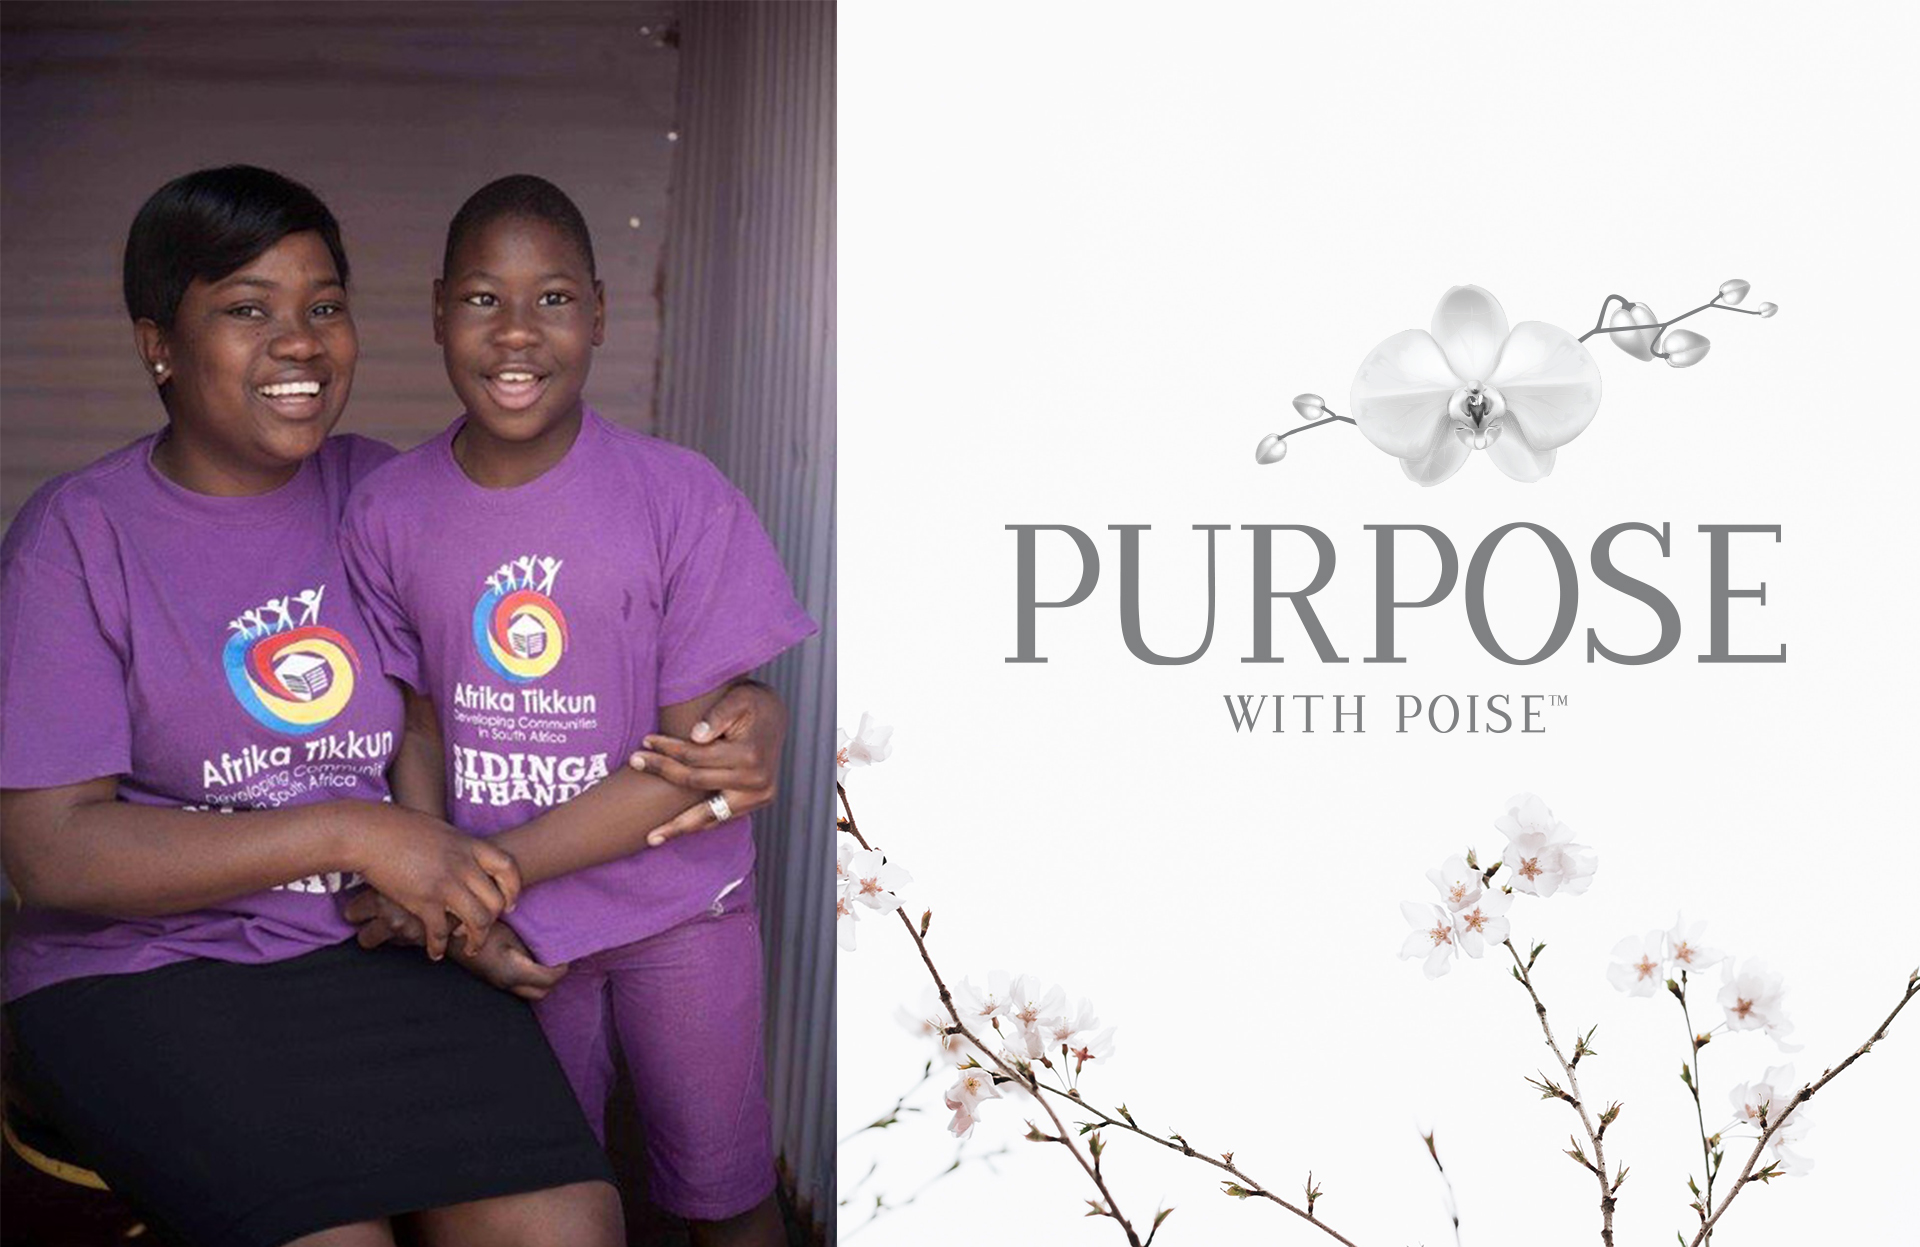 Purpose with Poise